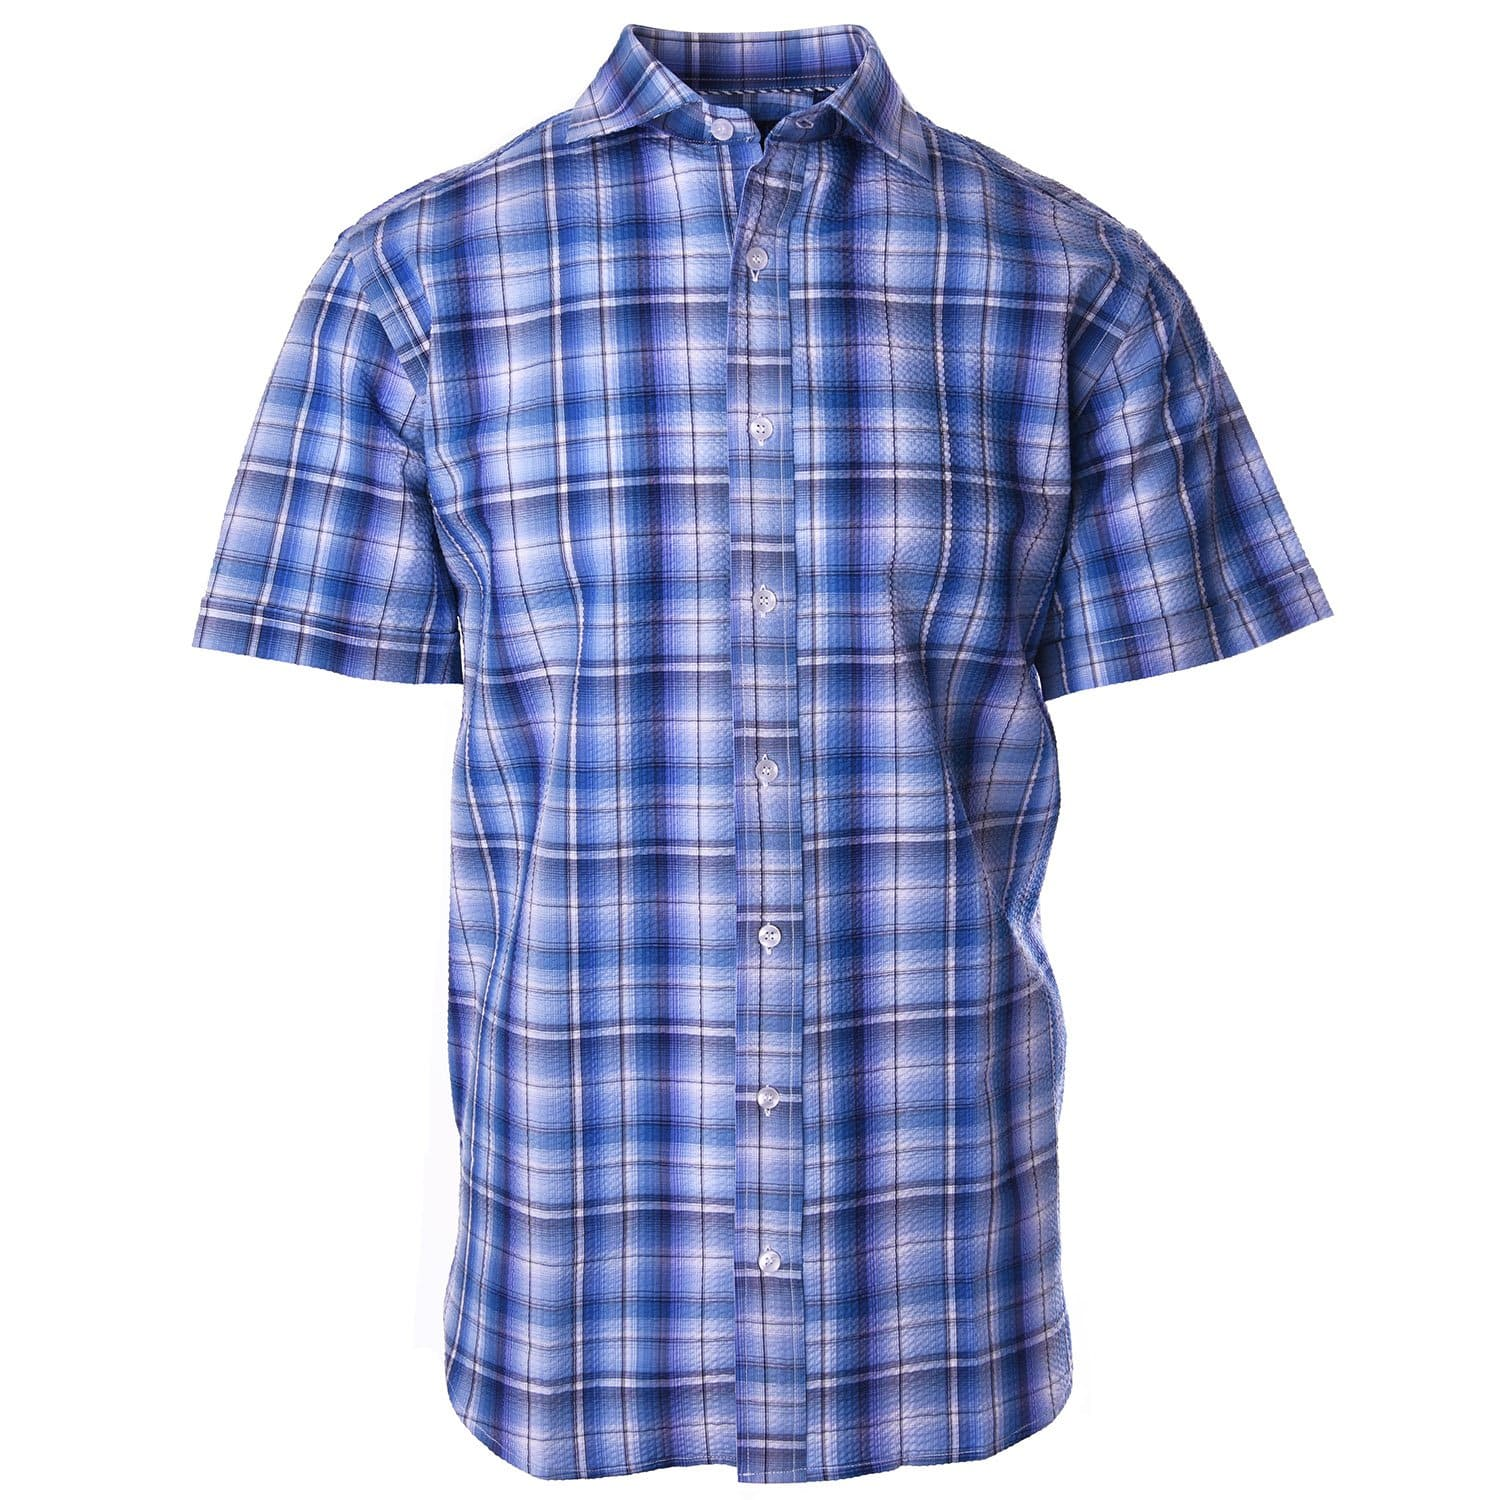 Nicholson Light Blue Seersucker Plaid